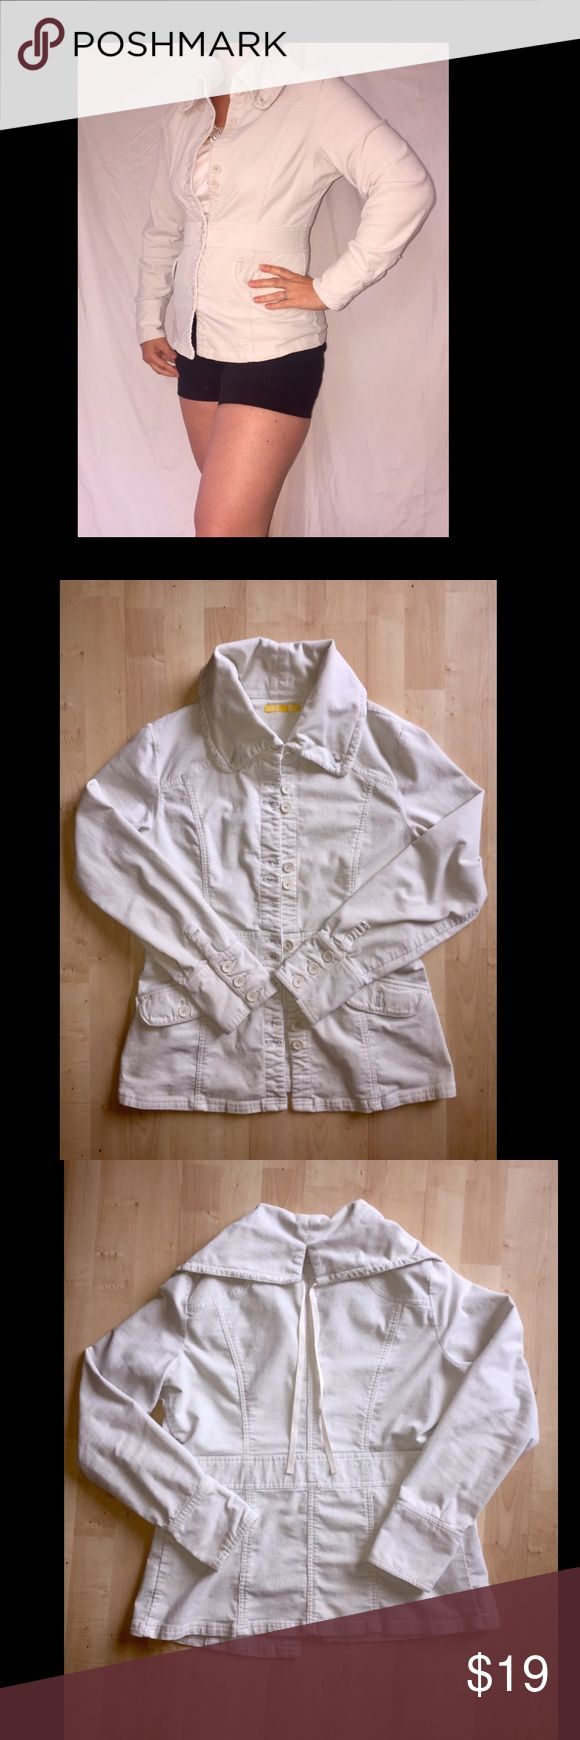 Lole Summer Corduroy Jacket The charm is in the details! Creamy corduroy jacket, perfect for a breezy summer evening. Slight stretch, flattering lines, buttons and cute collar ties in back.. make this your go-to summer wear! Lole Jackets & Coats Utility Jackets